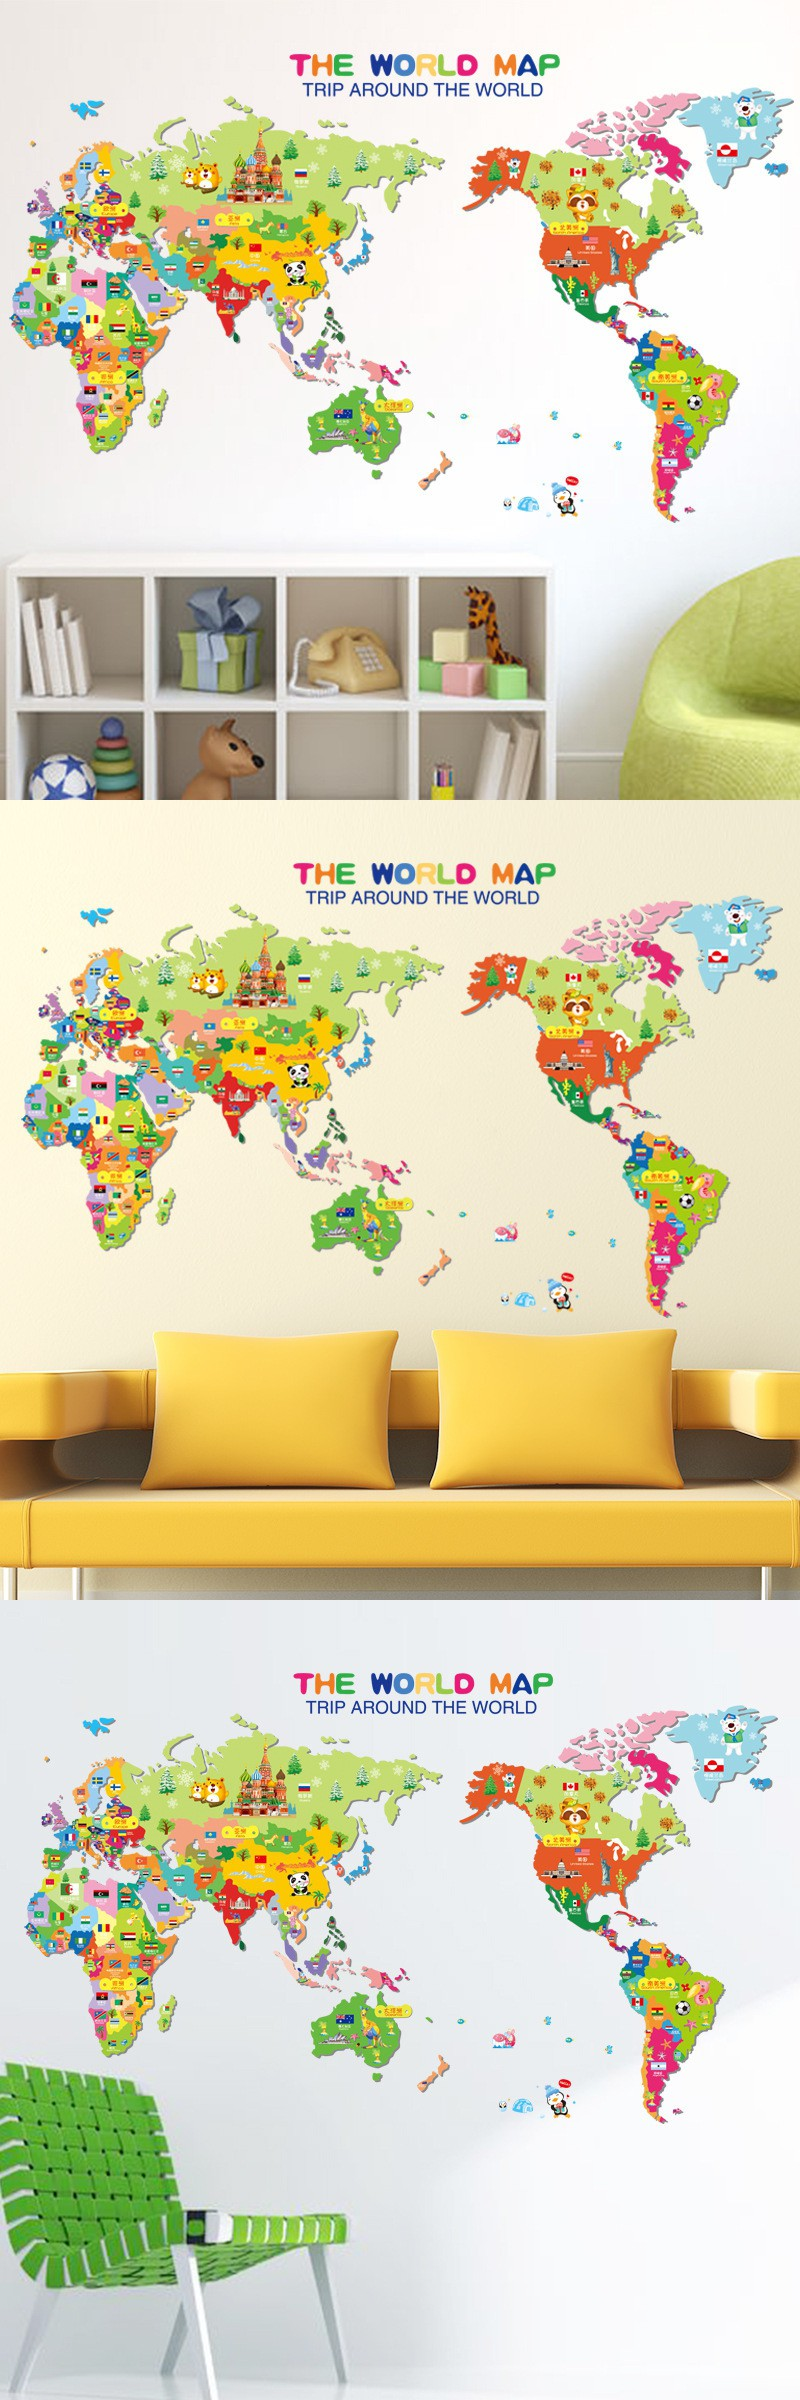 New creative cartoon world map wall sticker diy home decoration new creative cartoon world map wall sticker diy home decoration stickers living room bedroom background wall decorative stickers 698 gumiabroncs